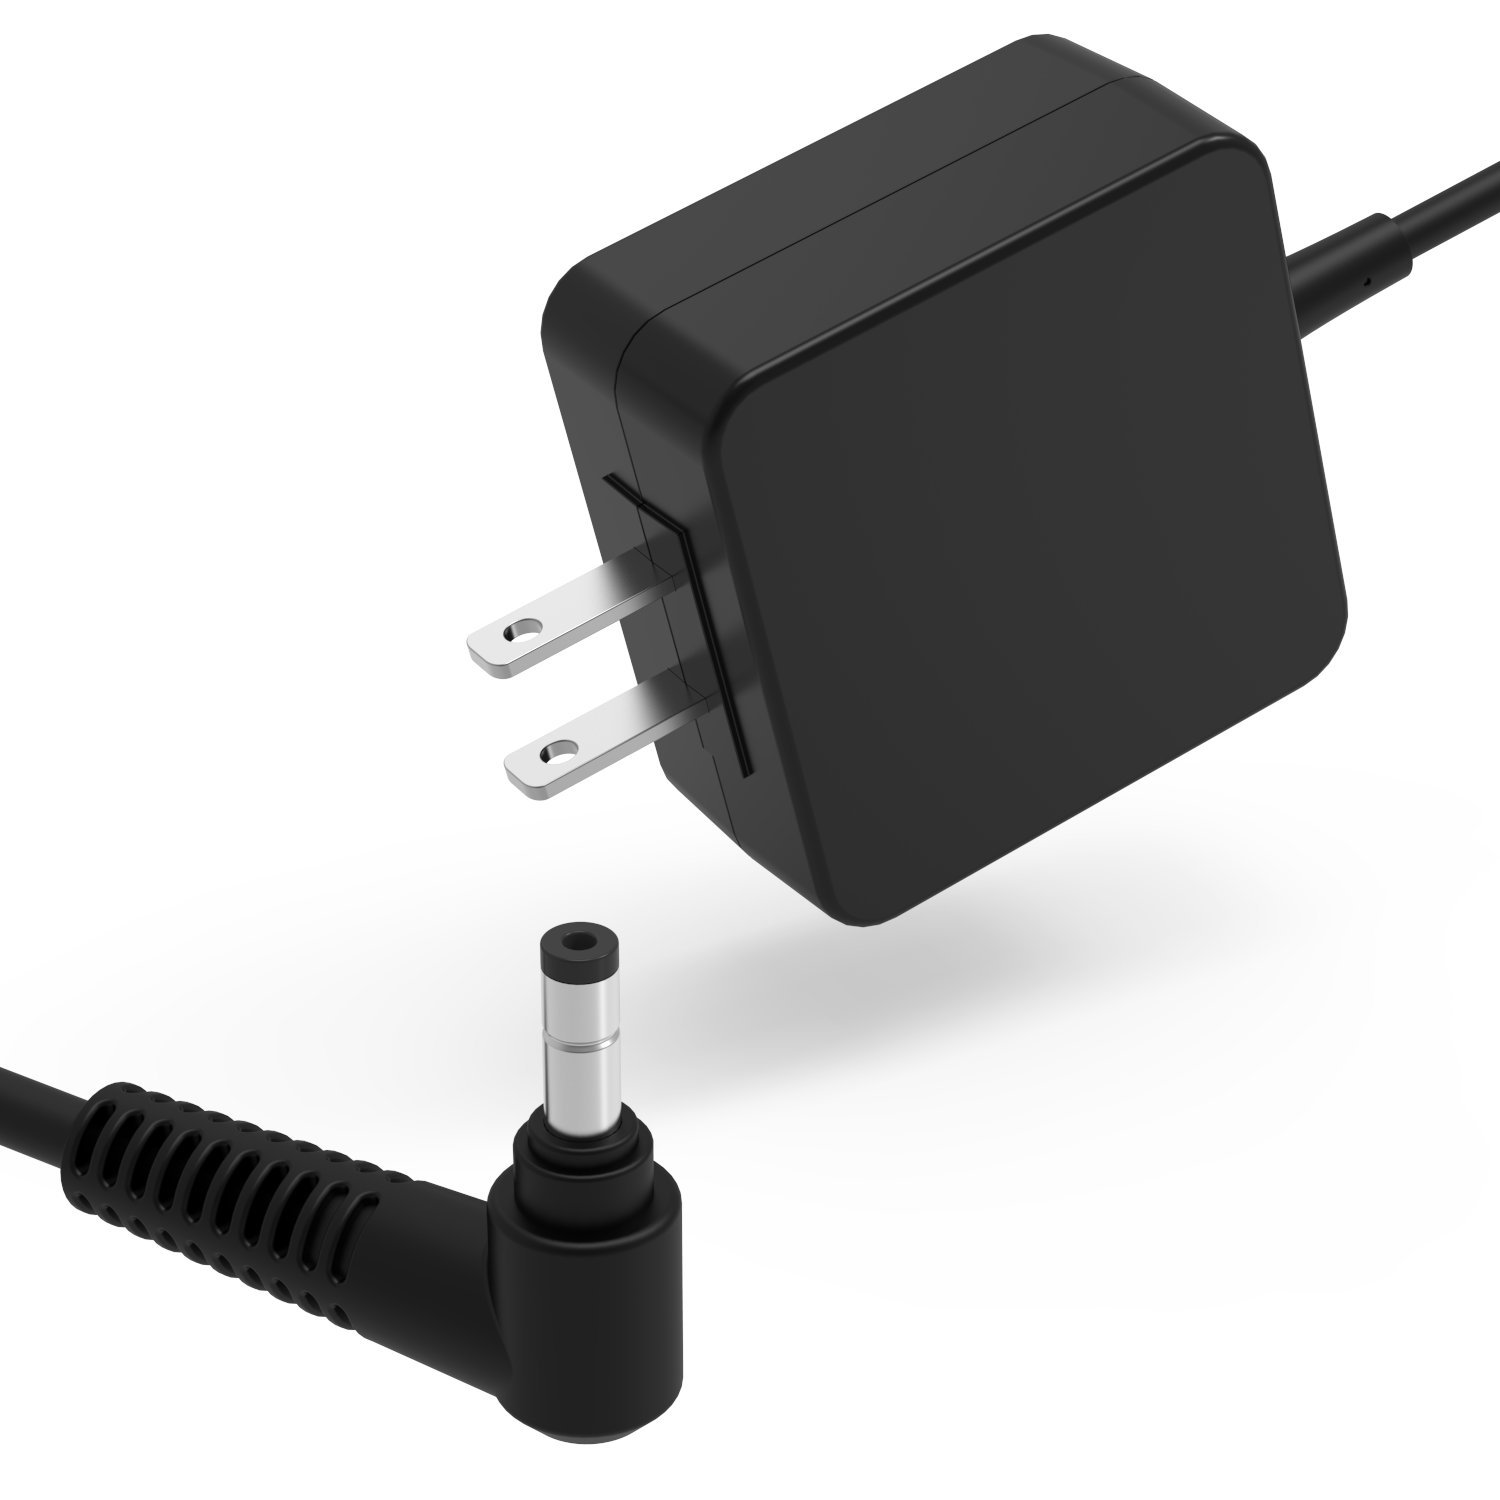 PowerSource 45W UL Listed 7Ft AC-Adapter-Charger for Lenovo-IdeaPad-100S 100 110 110S 120 120S 310 320 330S 510 ADL45WCC PA-1450-5LL Flex 4 Flex 5 Yoga 710 Chromebook-N22 N23 Laptop Power-Supply Cord by PowerSource